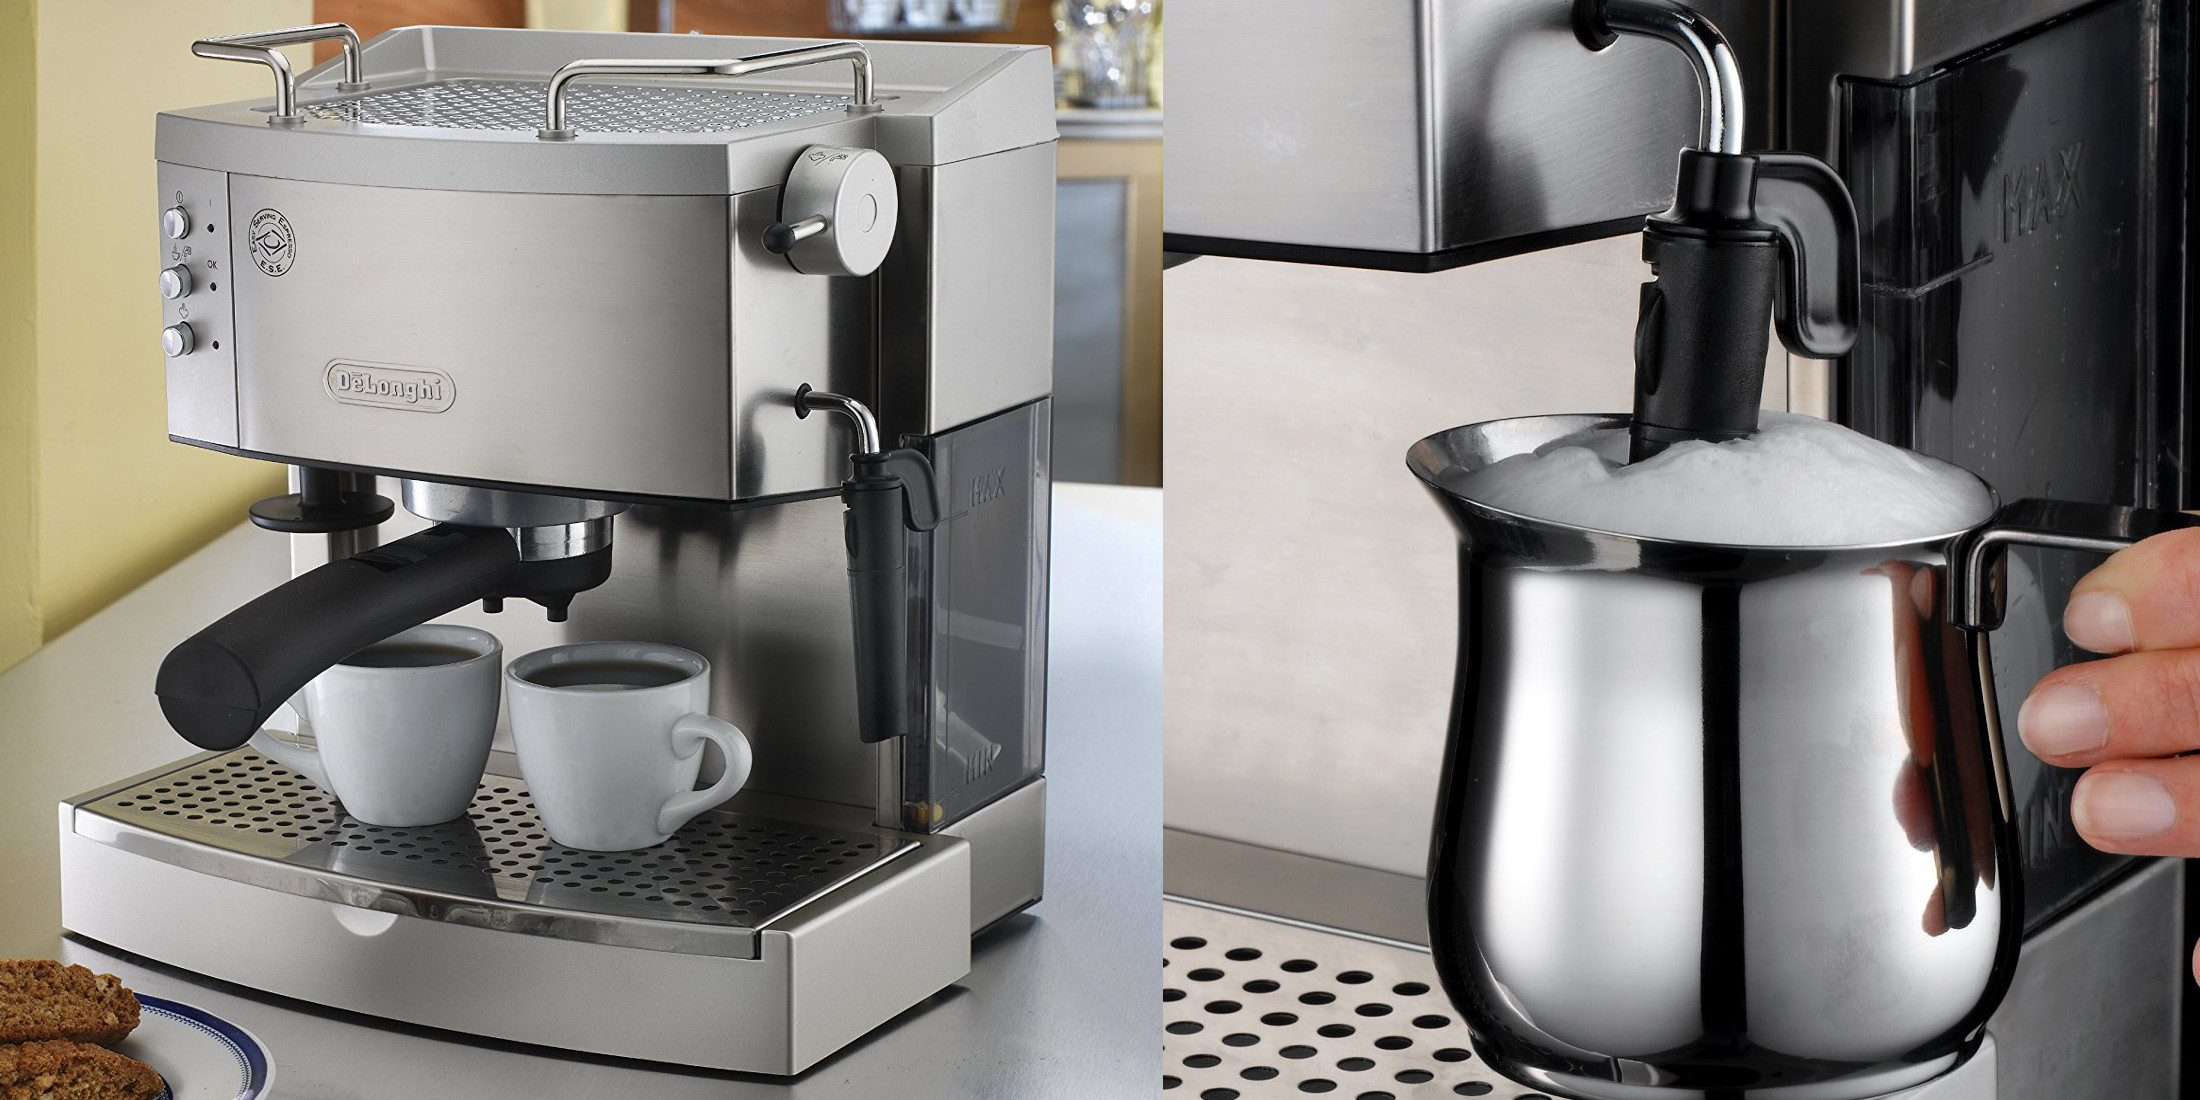 DeLonghi Stainless Steel Pump Espresso Maker drops to $152 (Reg. up to $220)